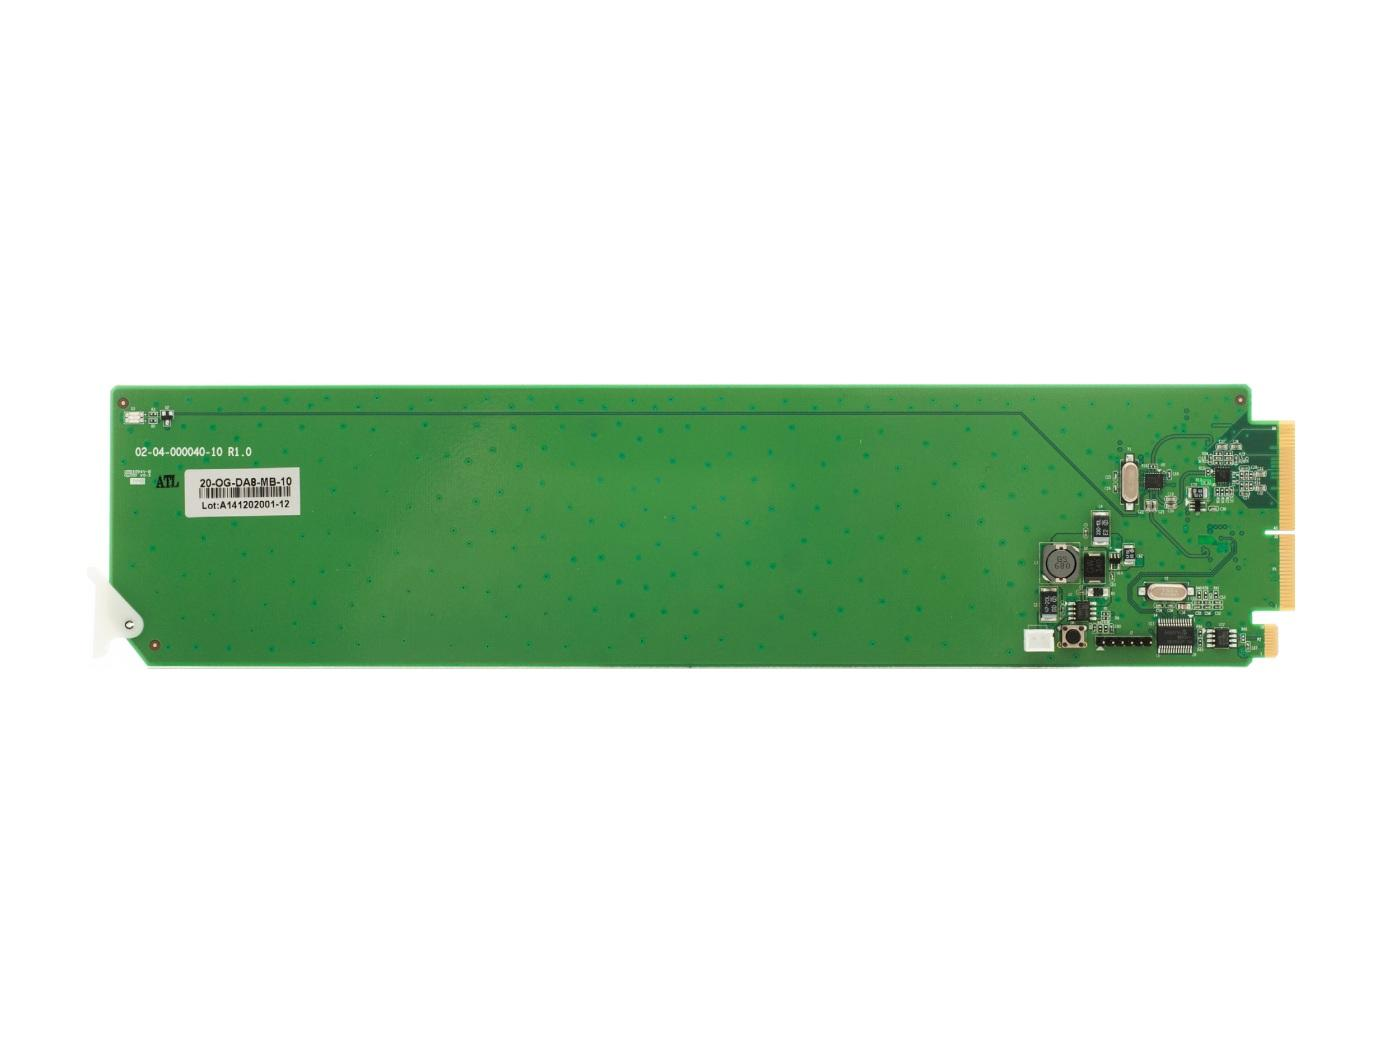 Apantac OG-DA-4HD-II-SET-2 2x 1x4 SDI Distribution Amplifier w Rear Module